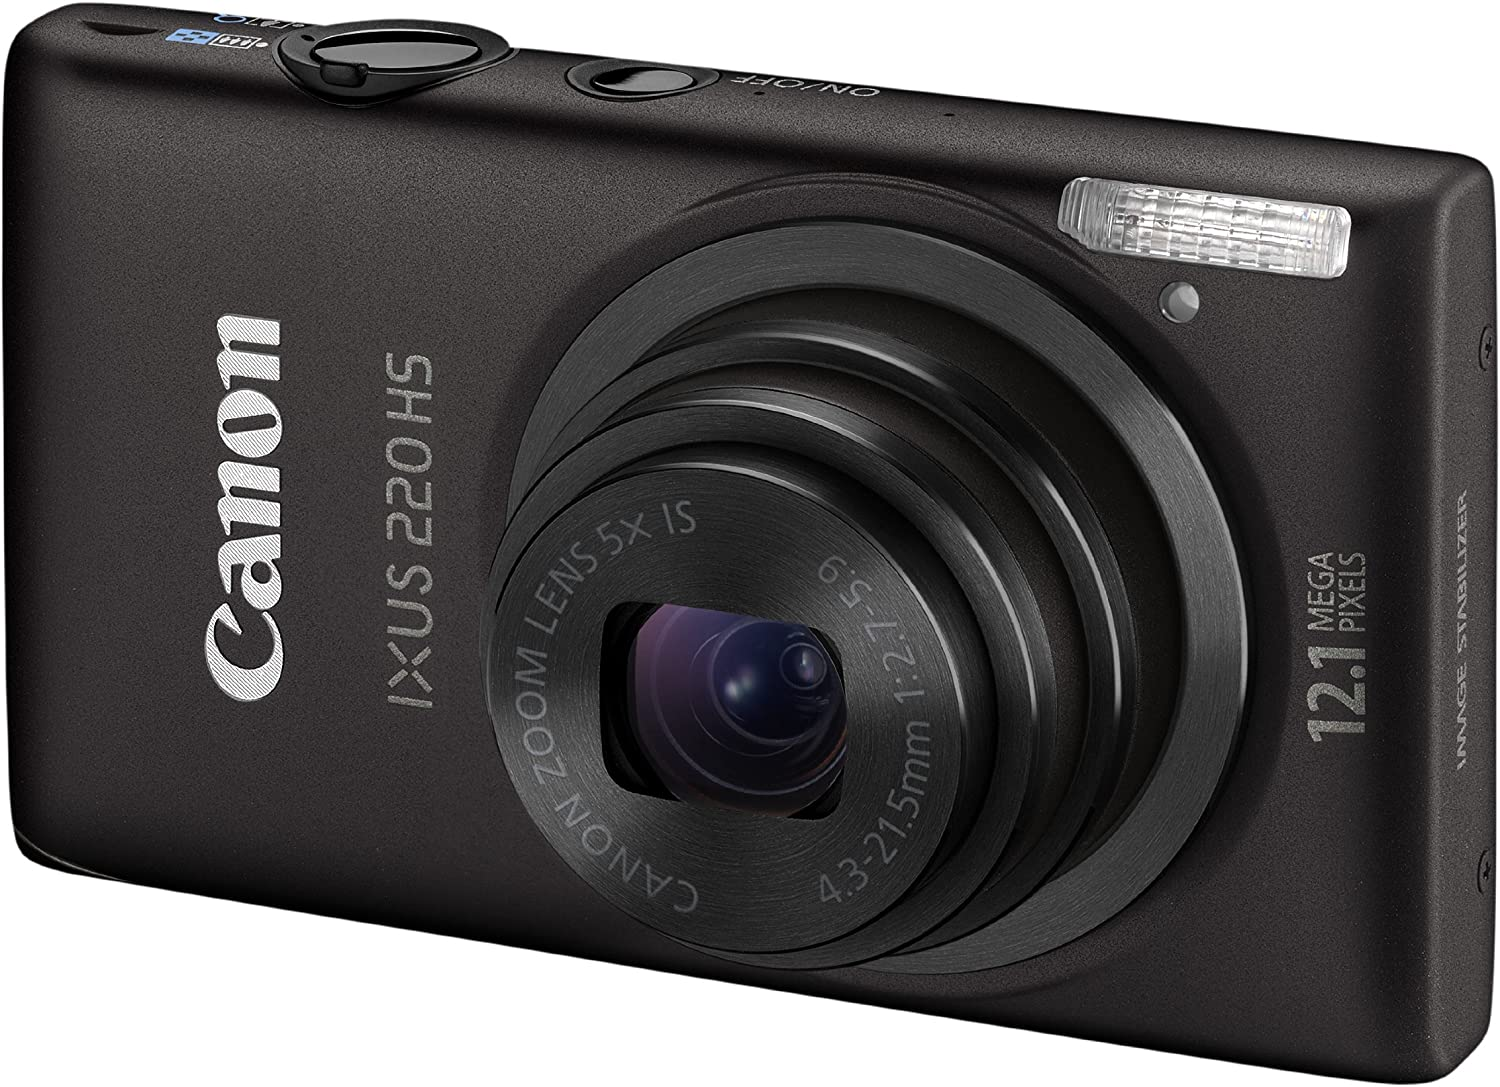 Canon 220 HS - Cámara Digital Compacta 12.1 MP: Amazon.es: Electrónica